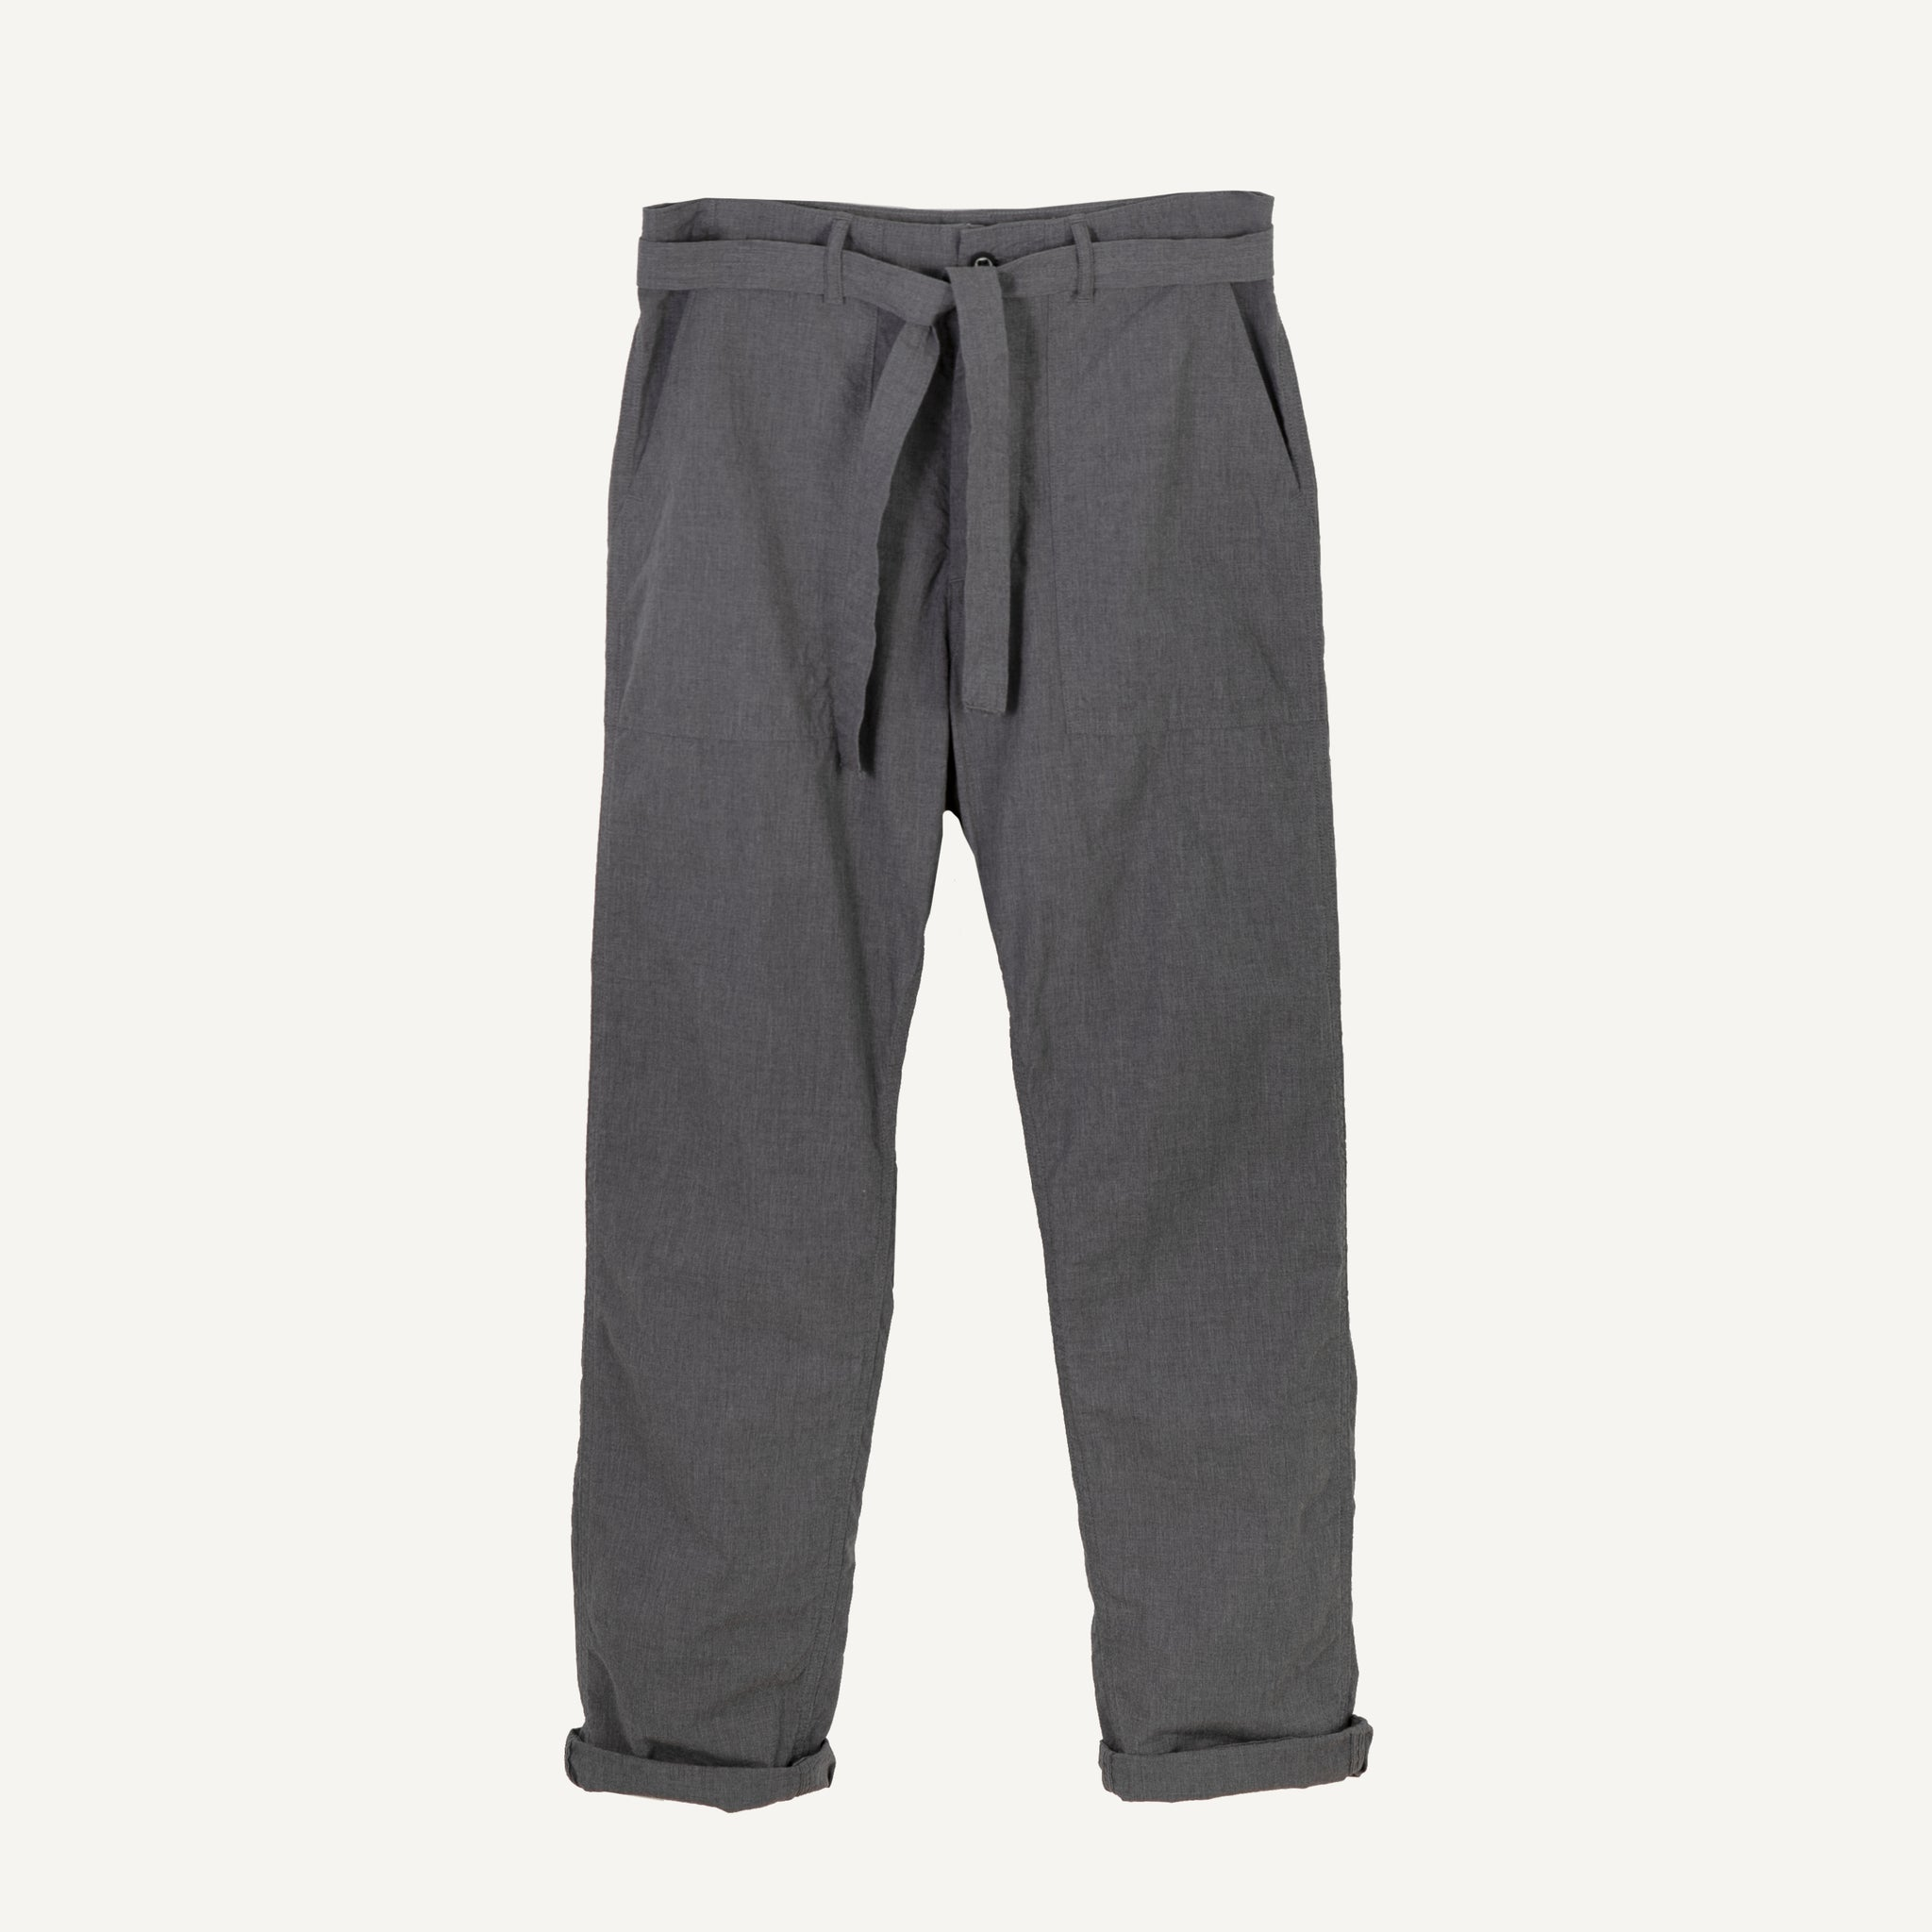 A VONTADE UTILITY TROUSERS WITH BELT MID GREY